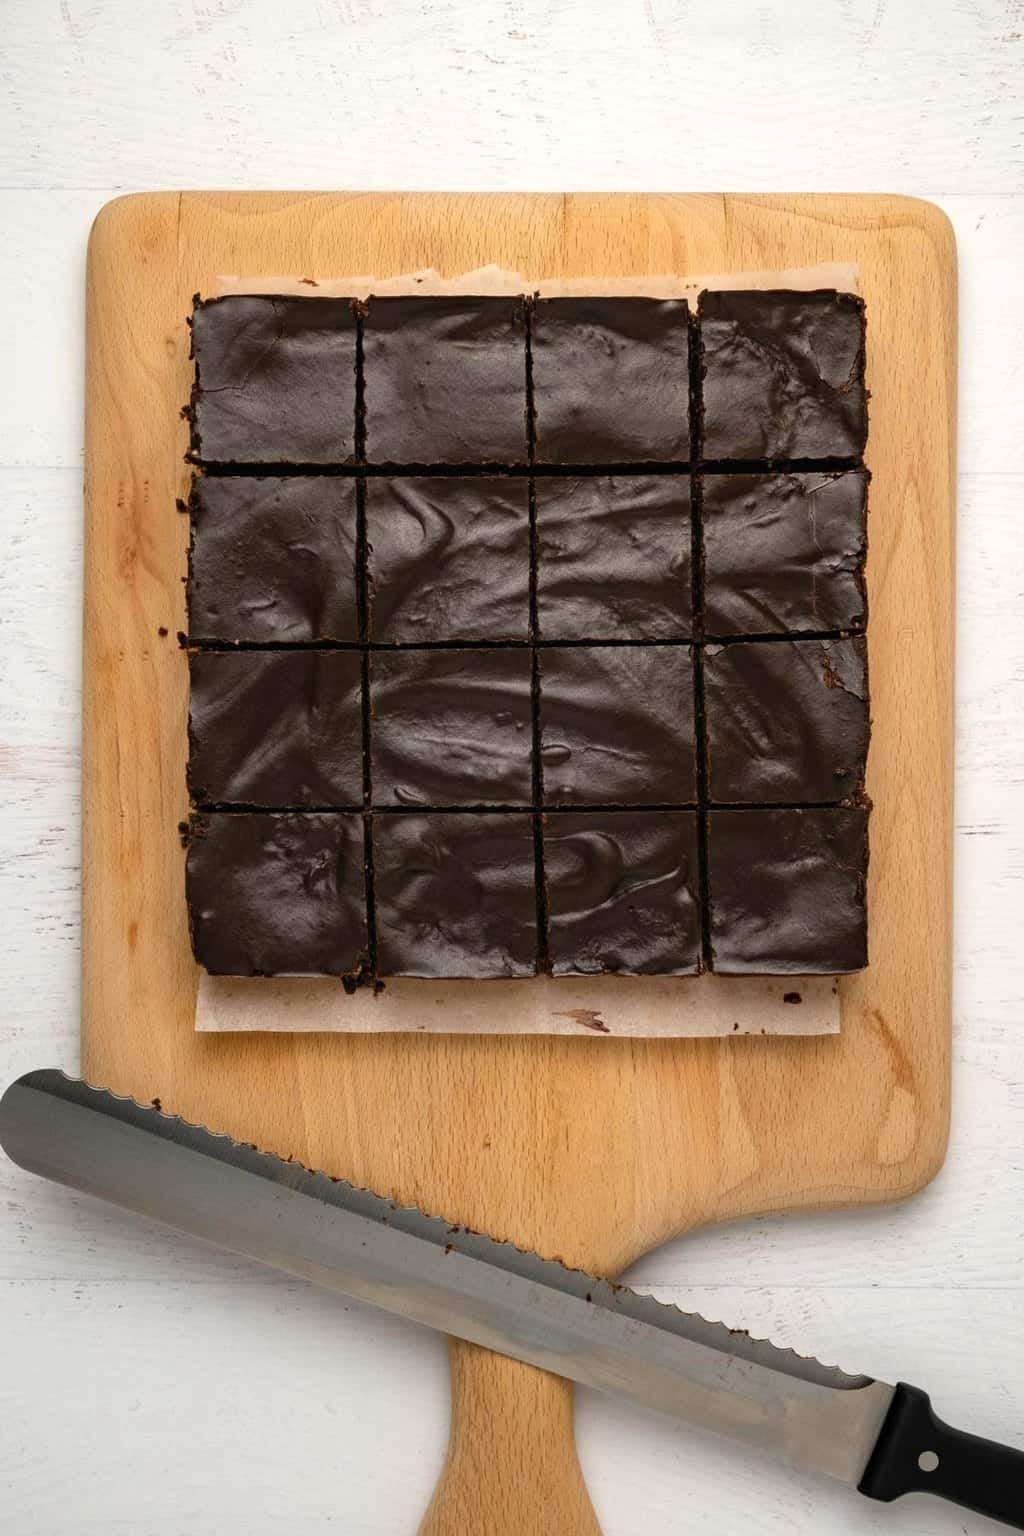 Raw vegan brownies cut into squares on a wooden board.